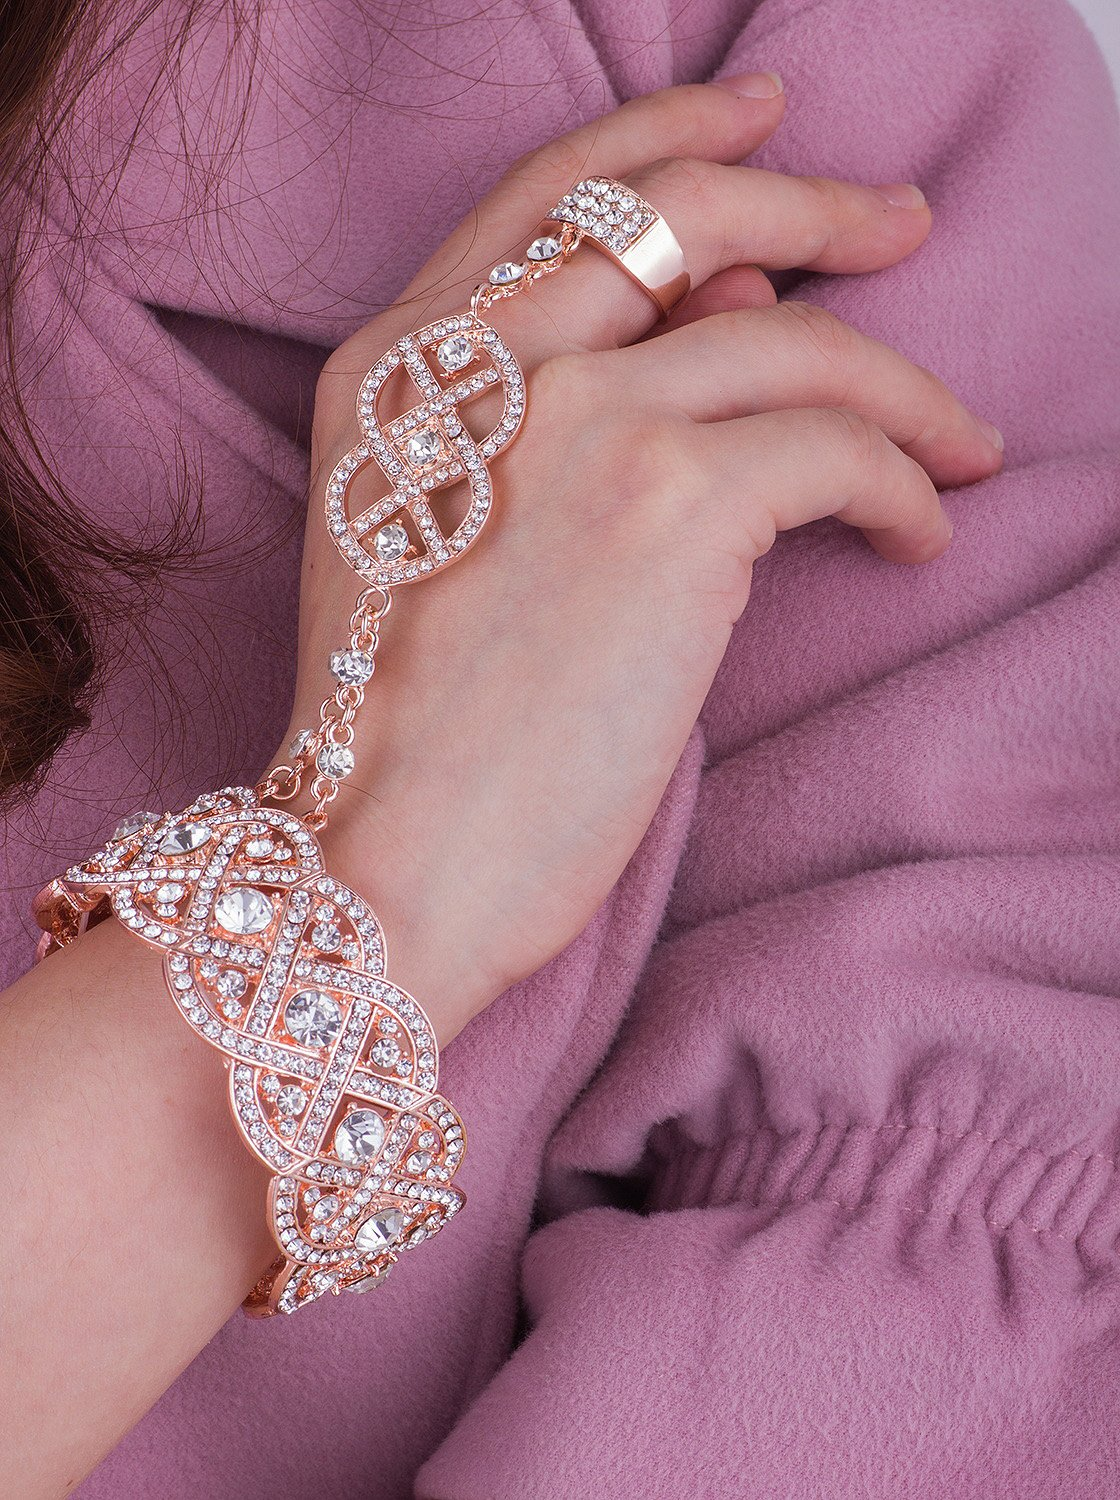 Vijiv Gold 1920s Flapper accessories Bracelet Ring Set Great Gatsby Style 20s Jewelry For Party by Vijiv (Image #3)